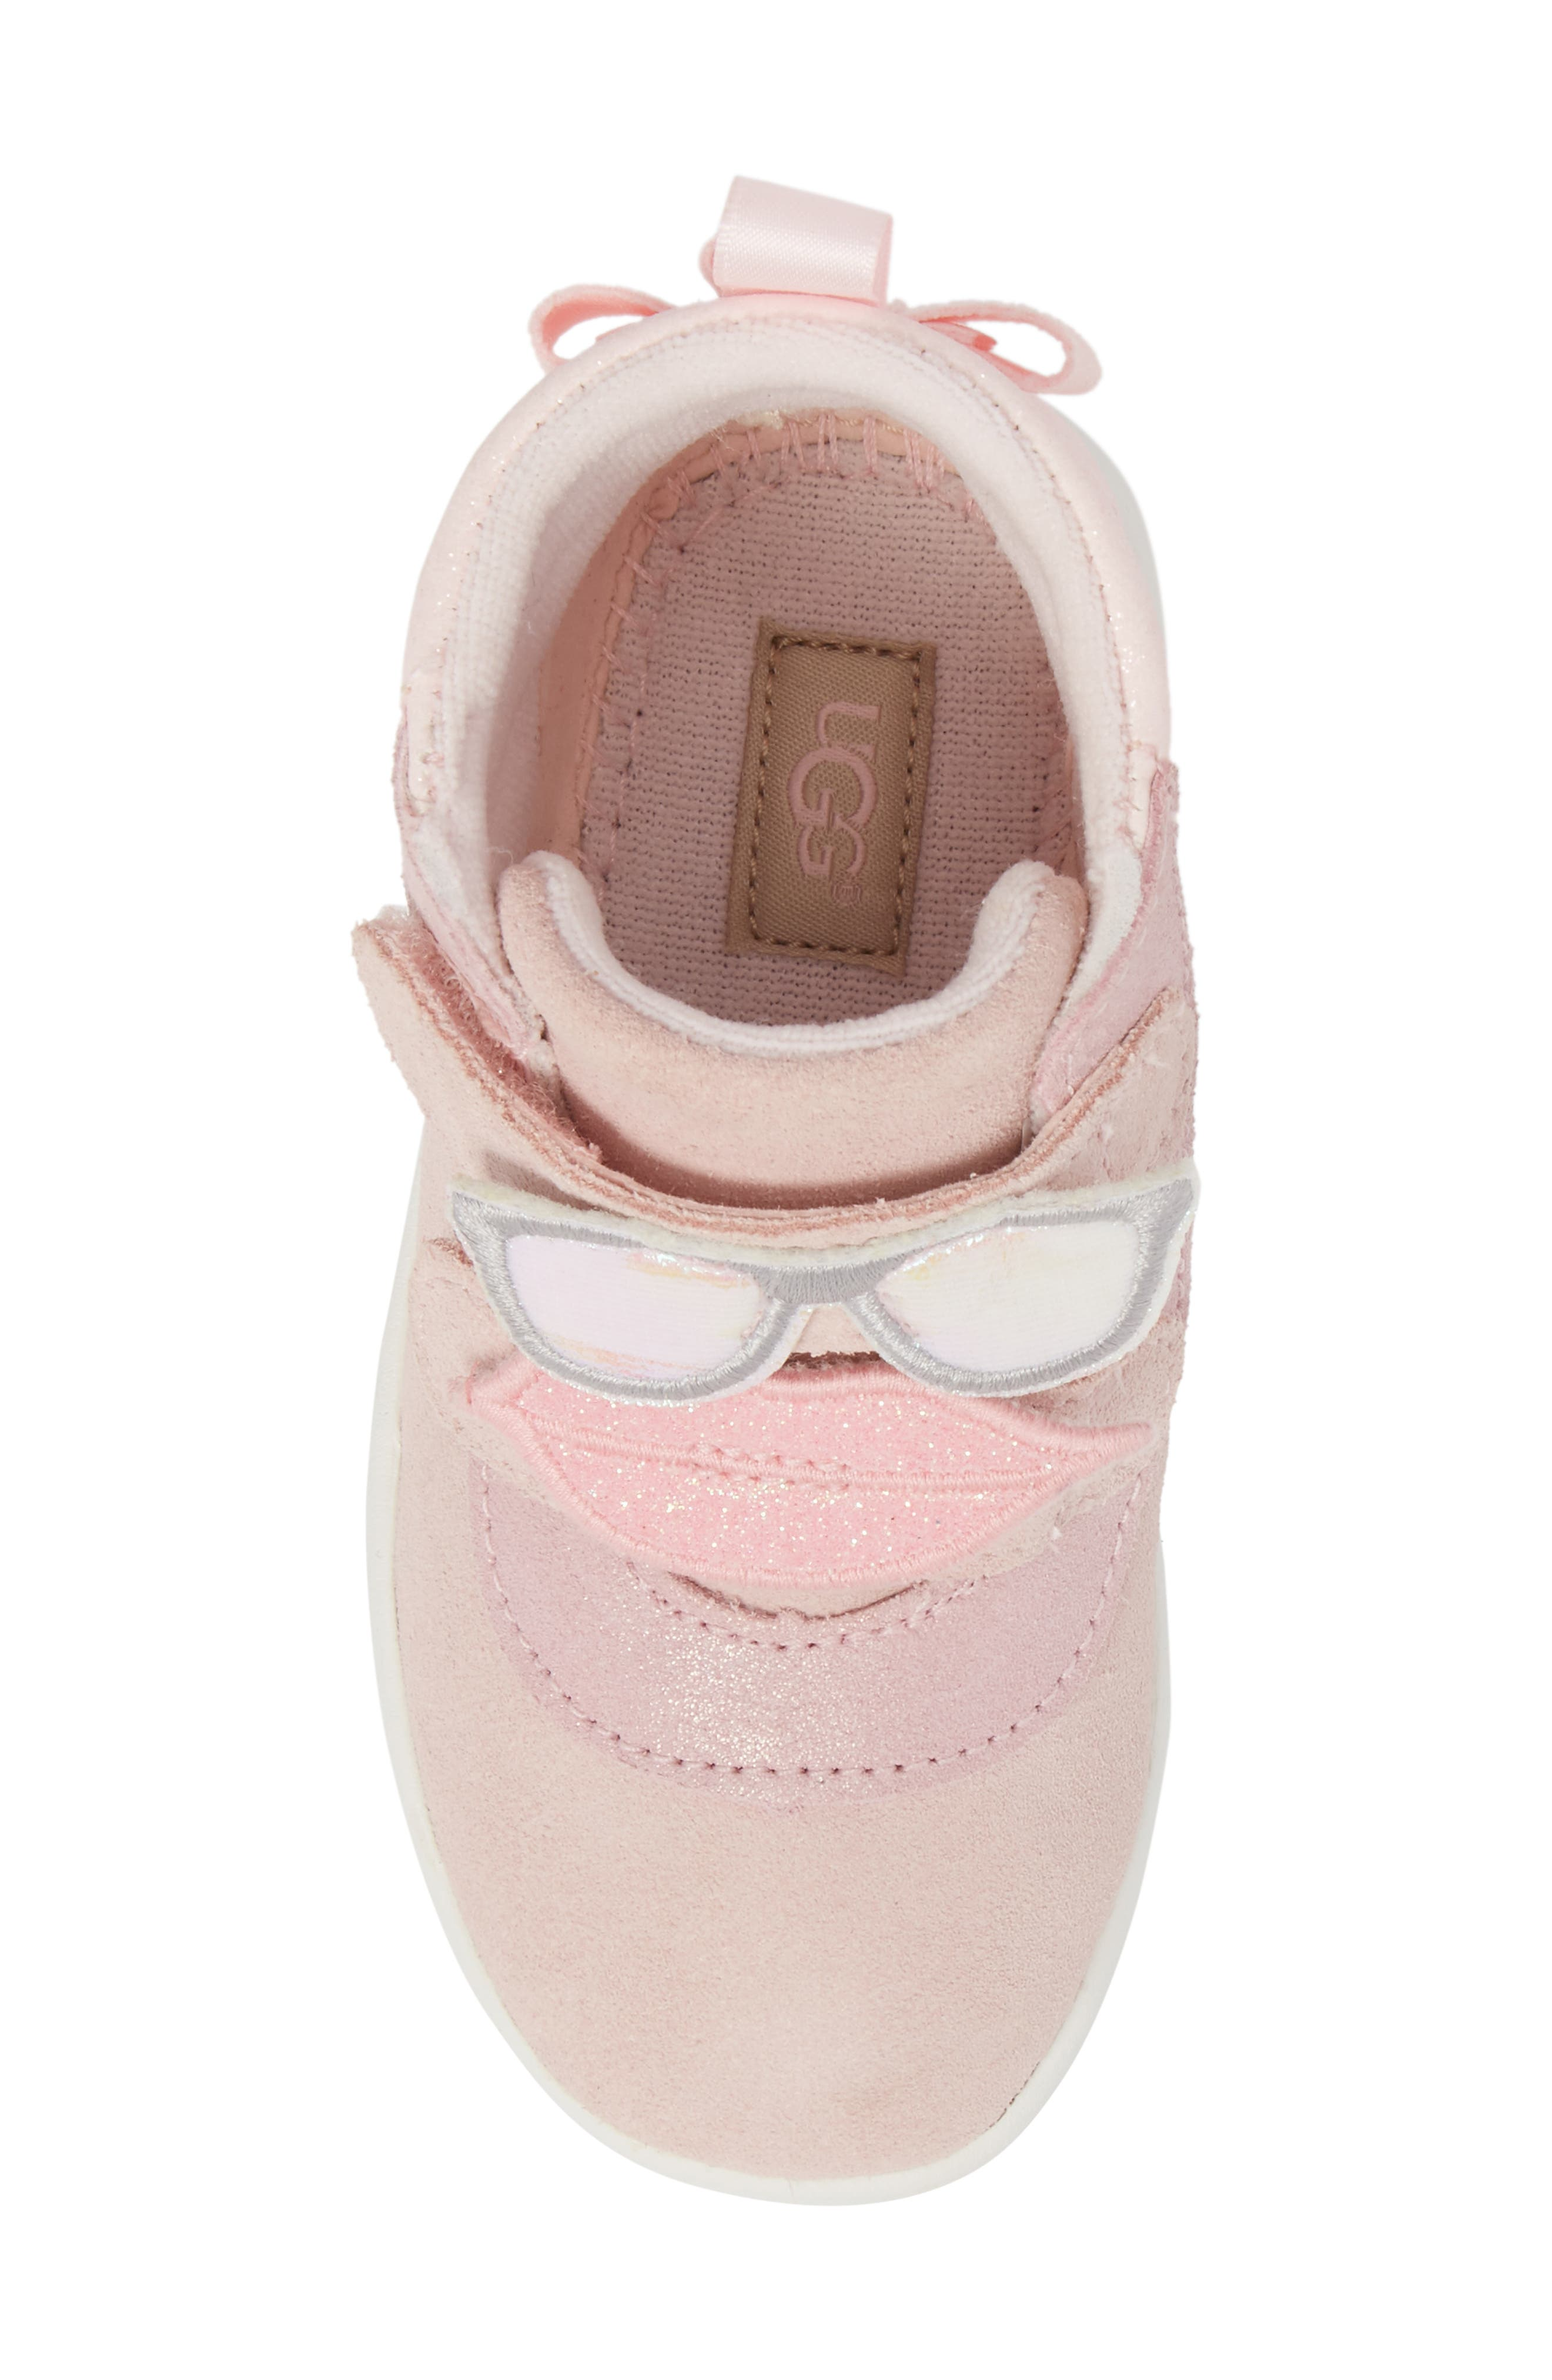 Livv Sunglass Appliqué Sneaker,                             Alternate thumbnail 5, color,                             689